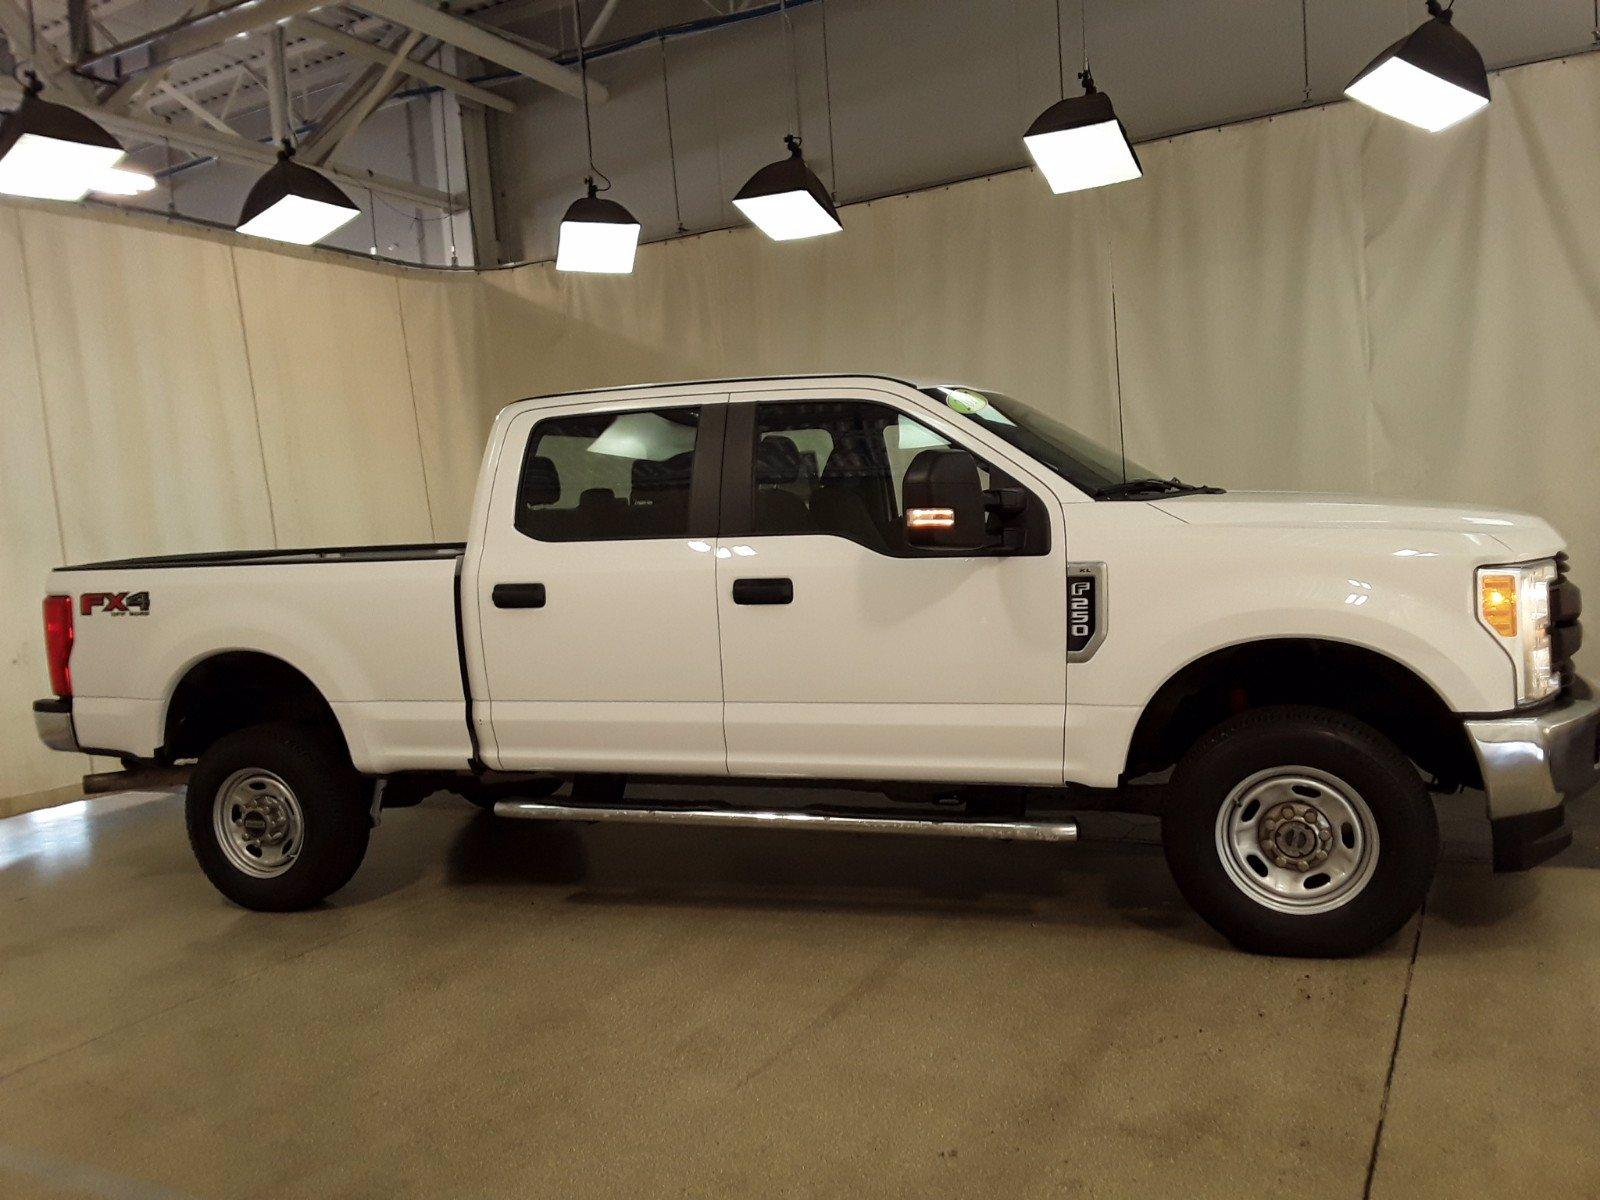 2017 Ford F-250 Crew Cab 4x4, Pickup #BP7504 - photo 3